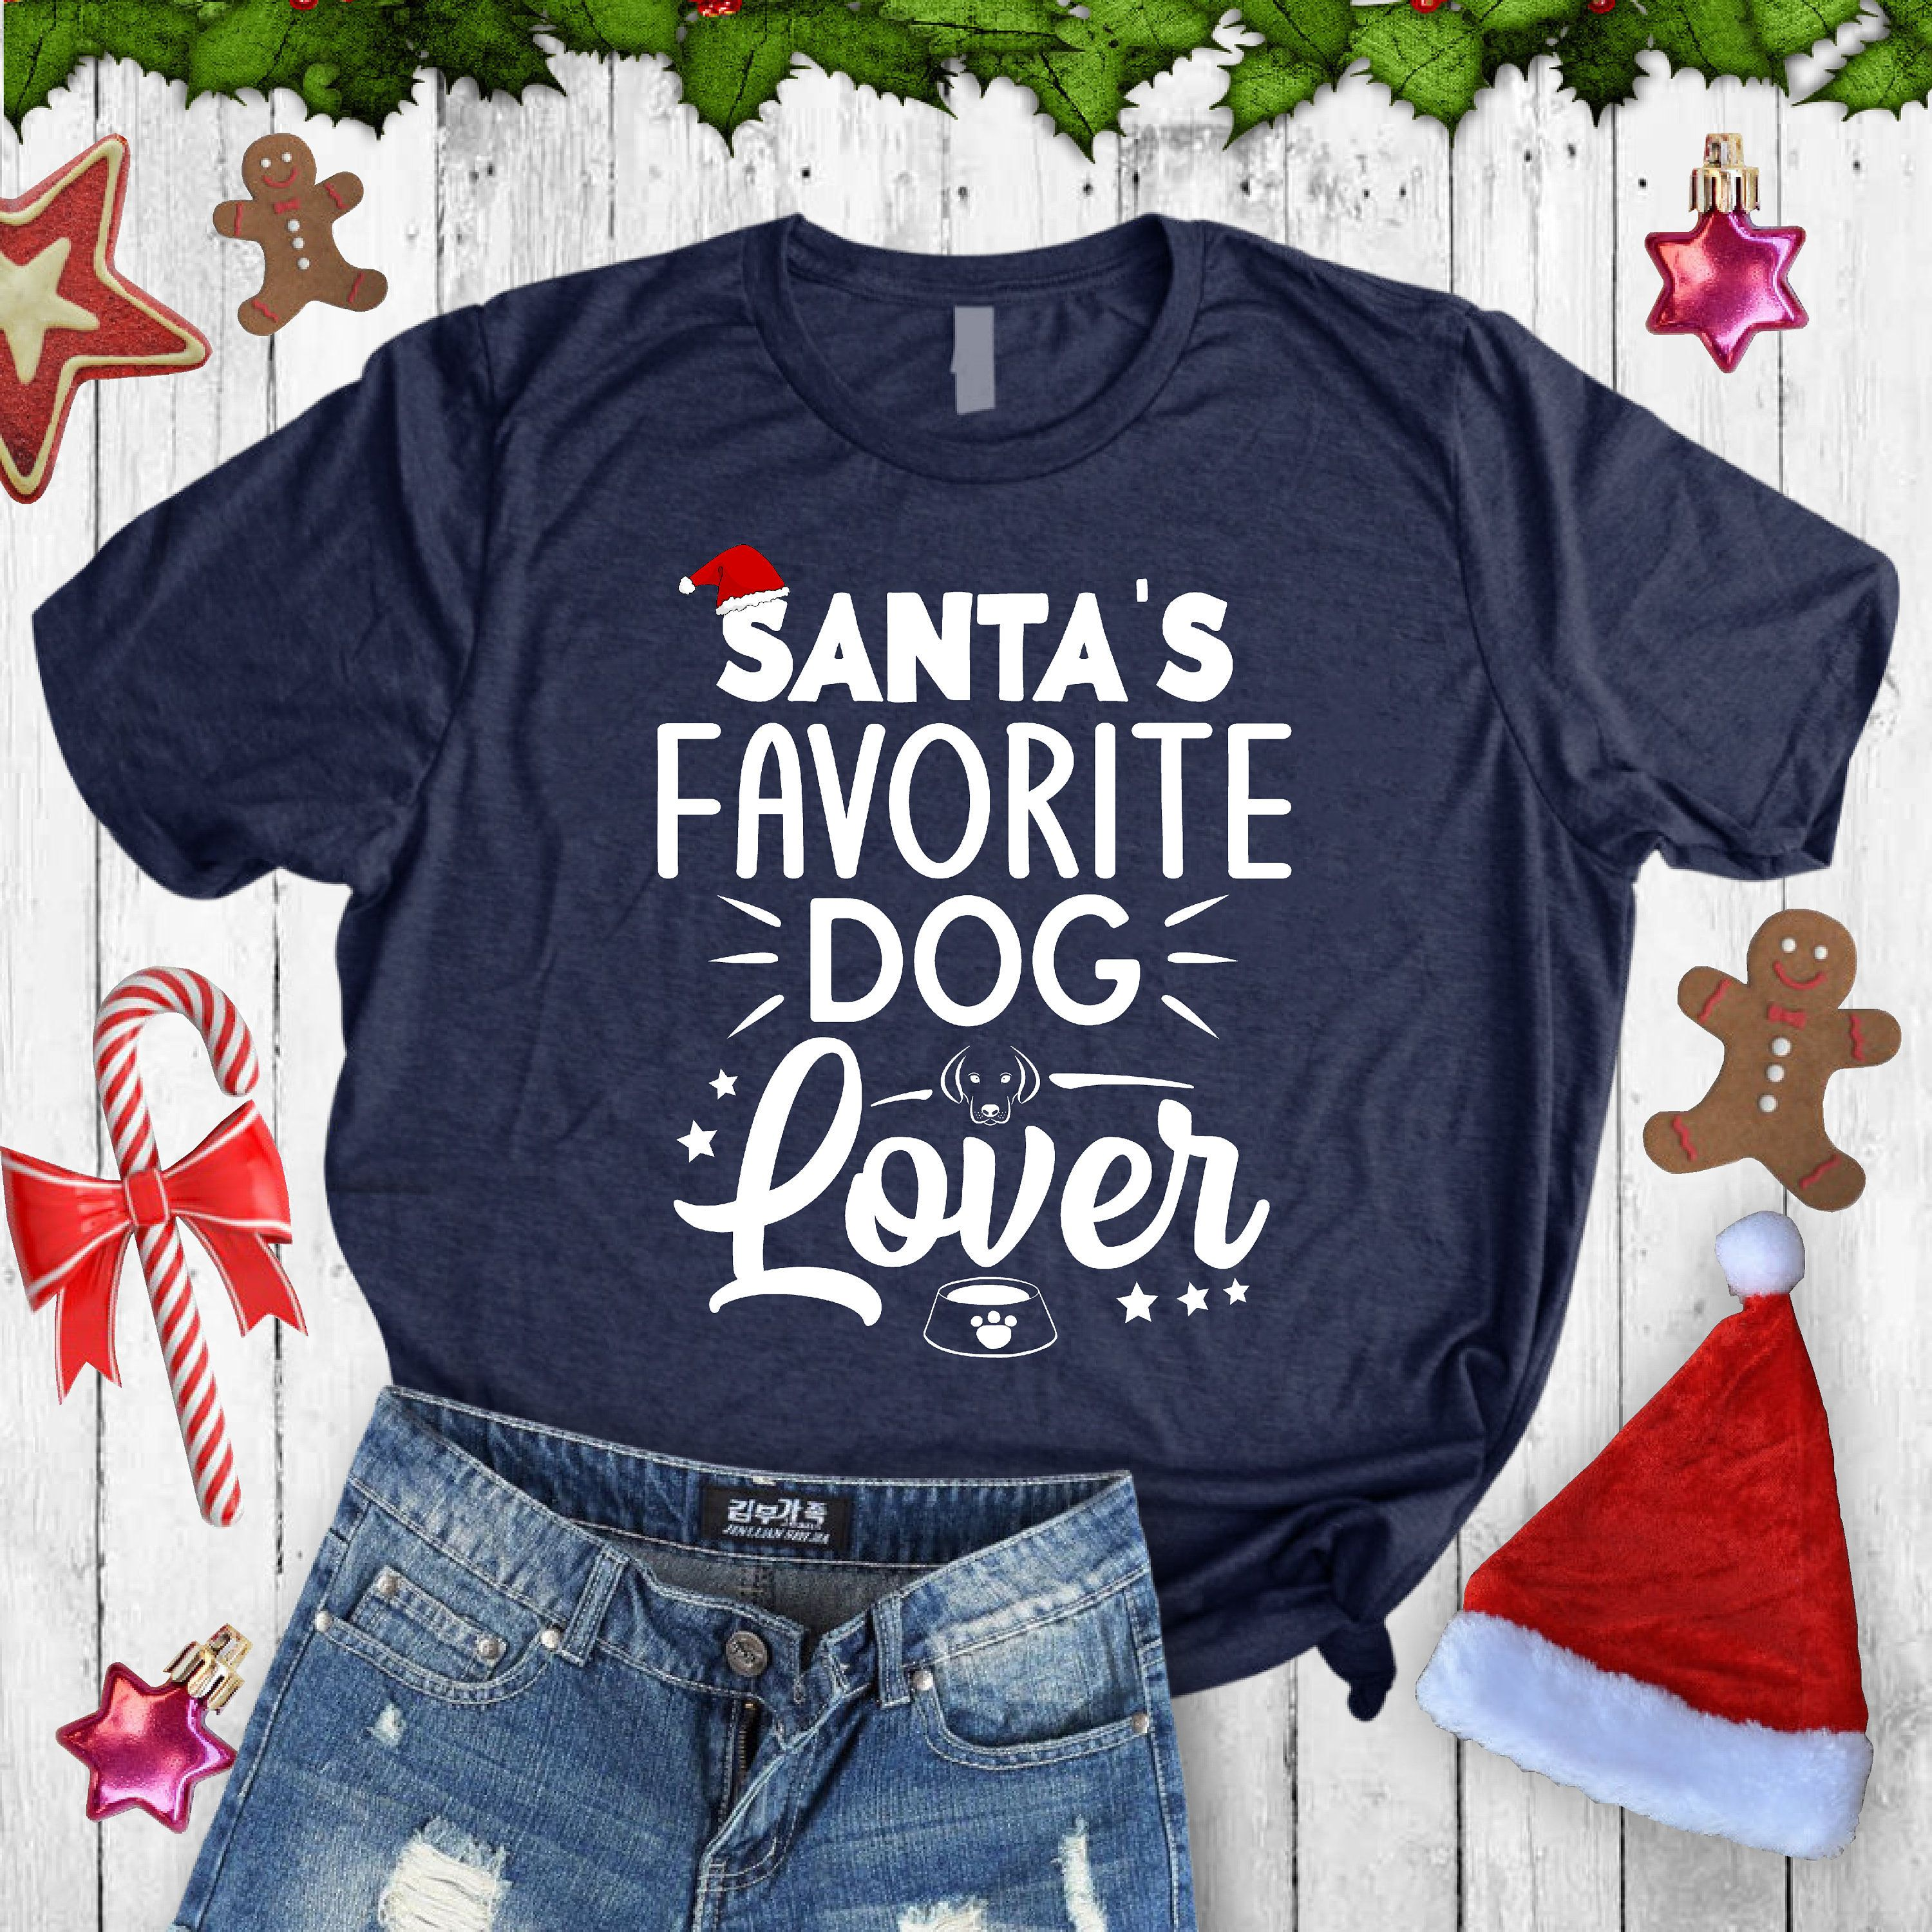 Santa's Favorite Dog Lover Shirt/Christmas Dog Lover/Womens Dog Shirt/Gift For Dog Lover/Santa Dog Mom Shirt/Pet Care Shirt/Christmas Shirt #custodianappreciationgifts